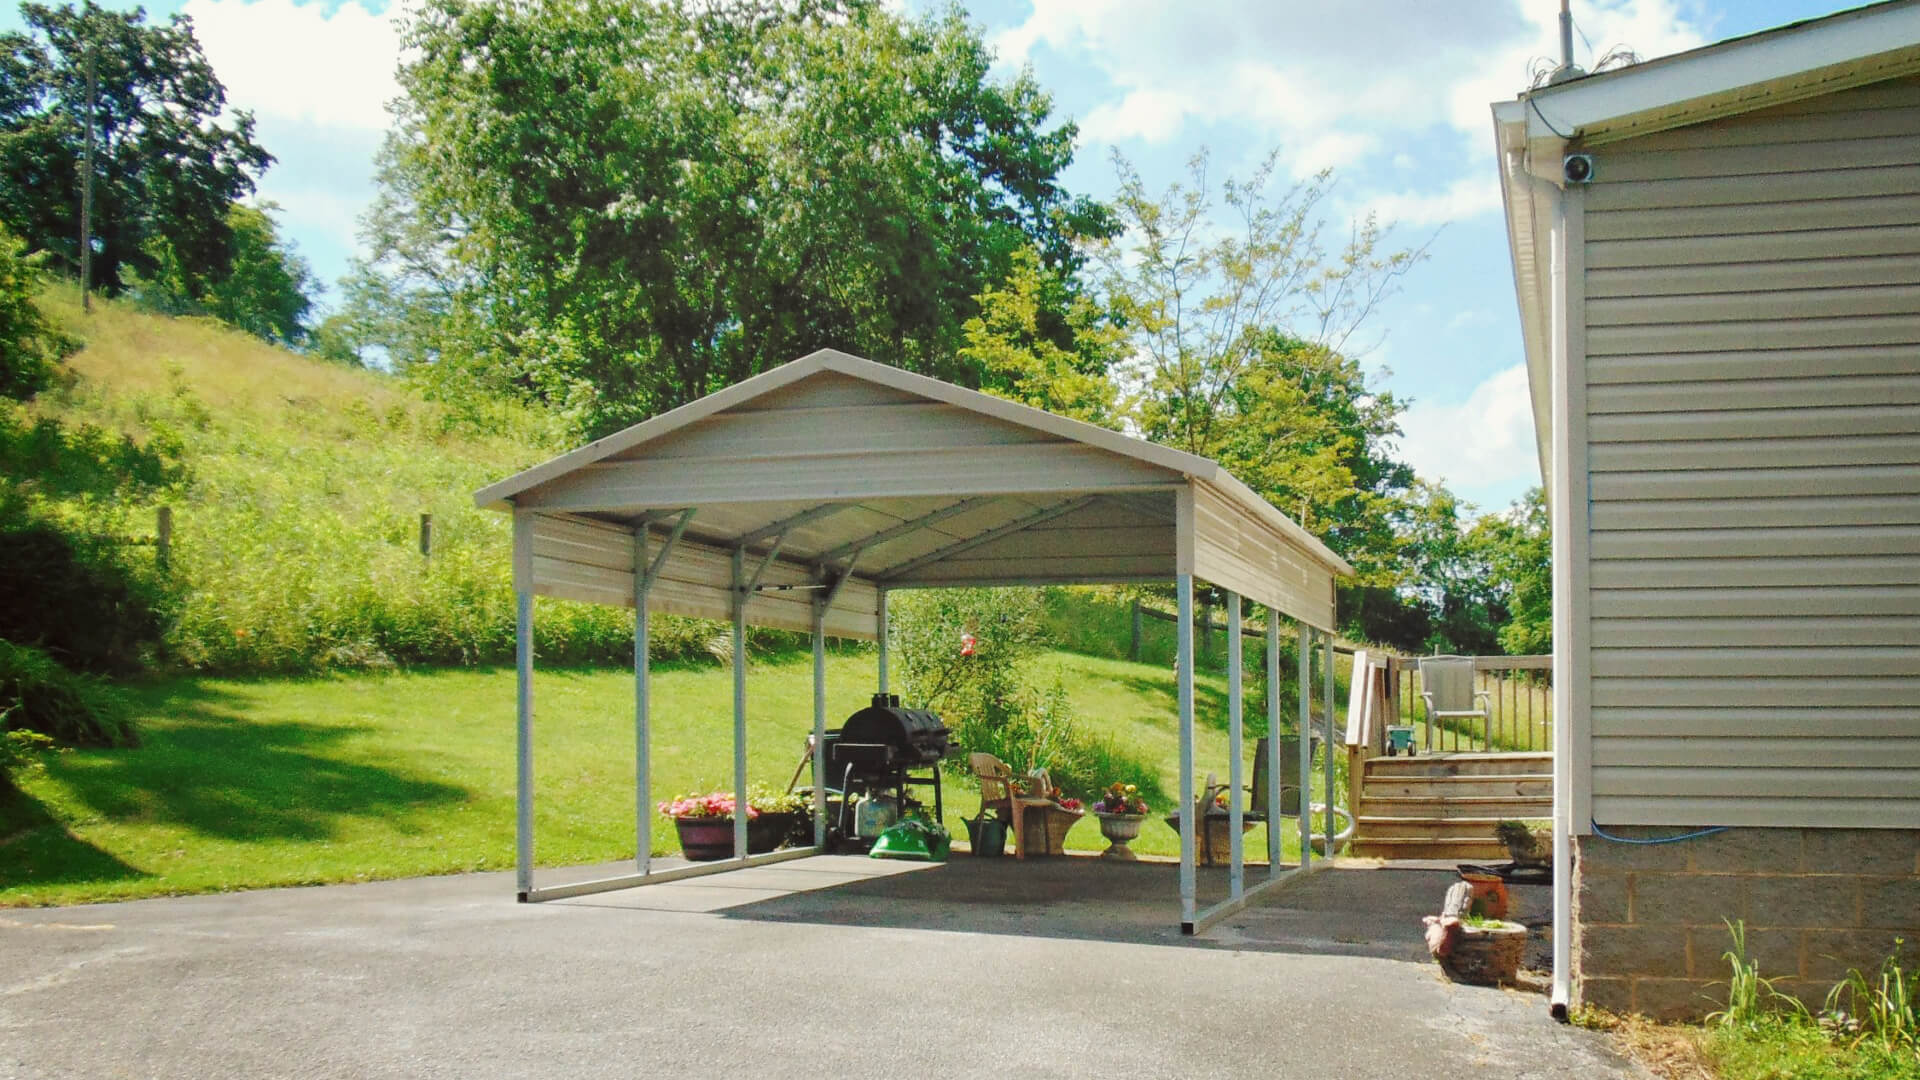 12x21 Boxed Eave Roof Steel Carport